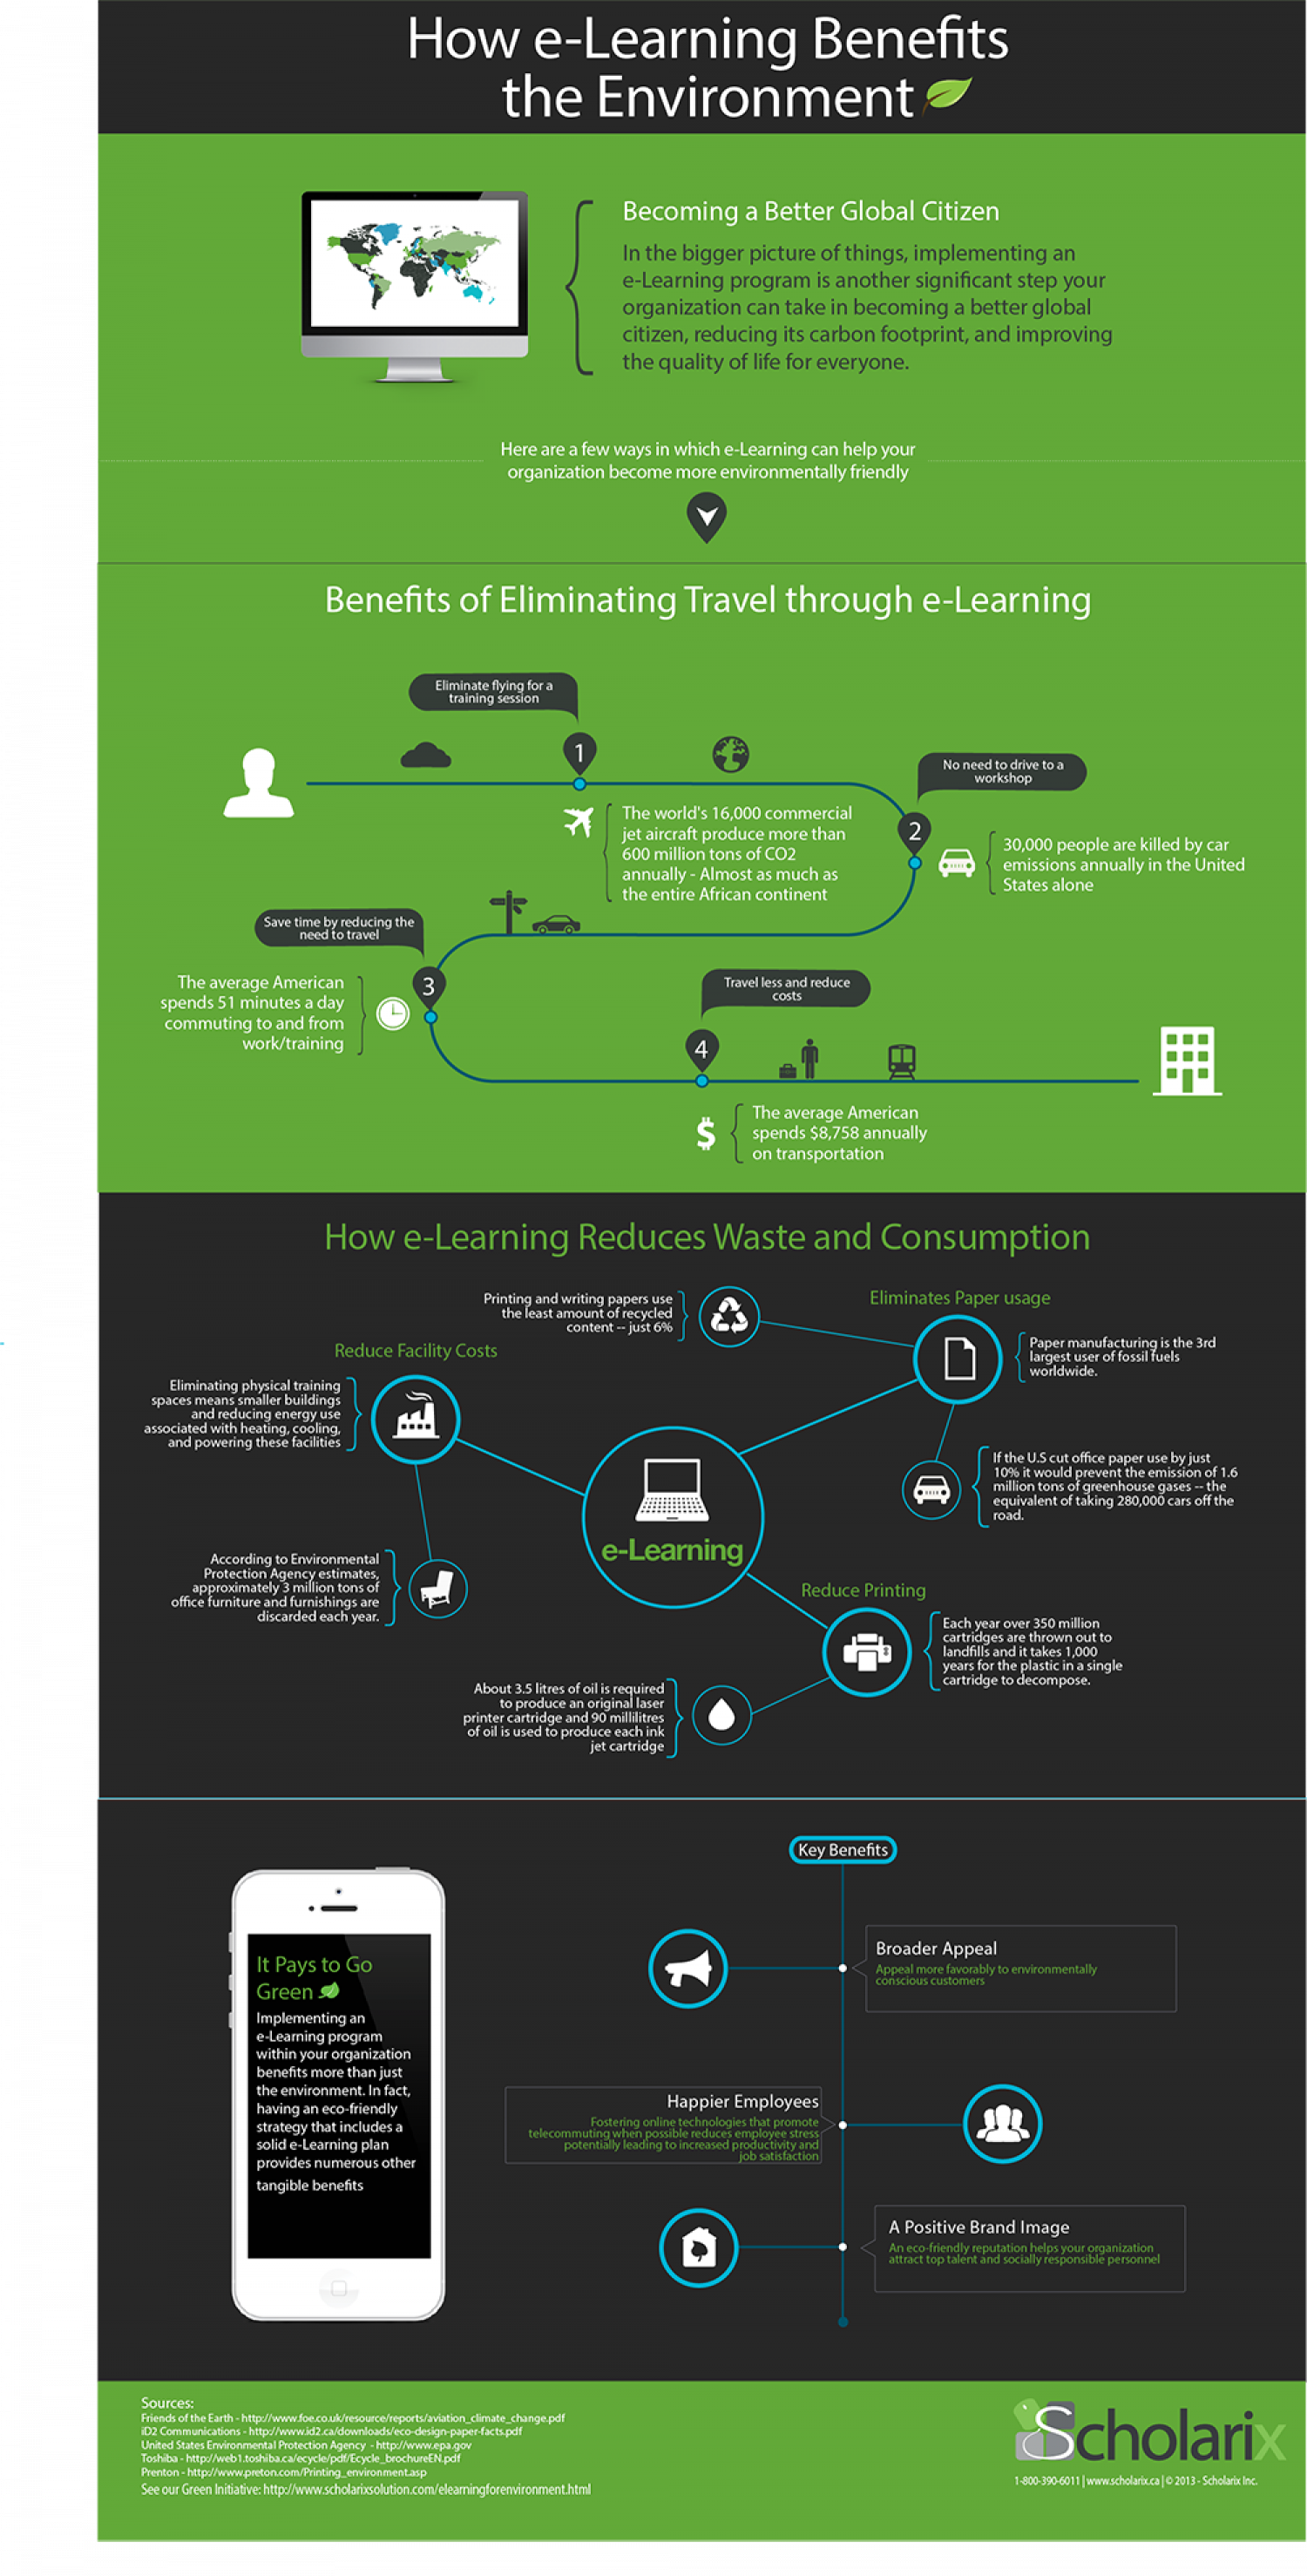 How e-Learning Benefits the Environment Infographic